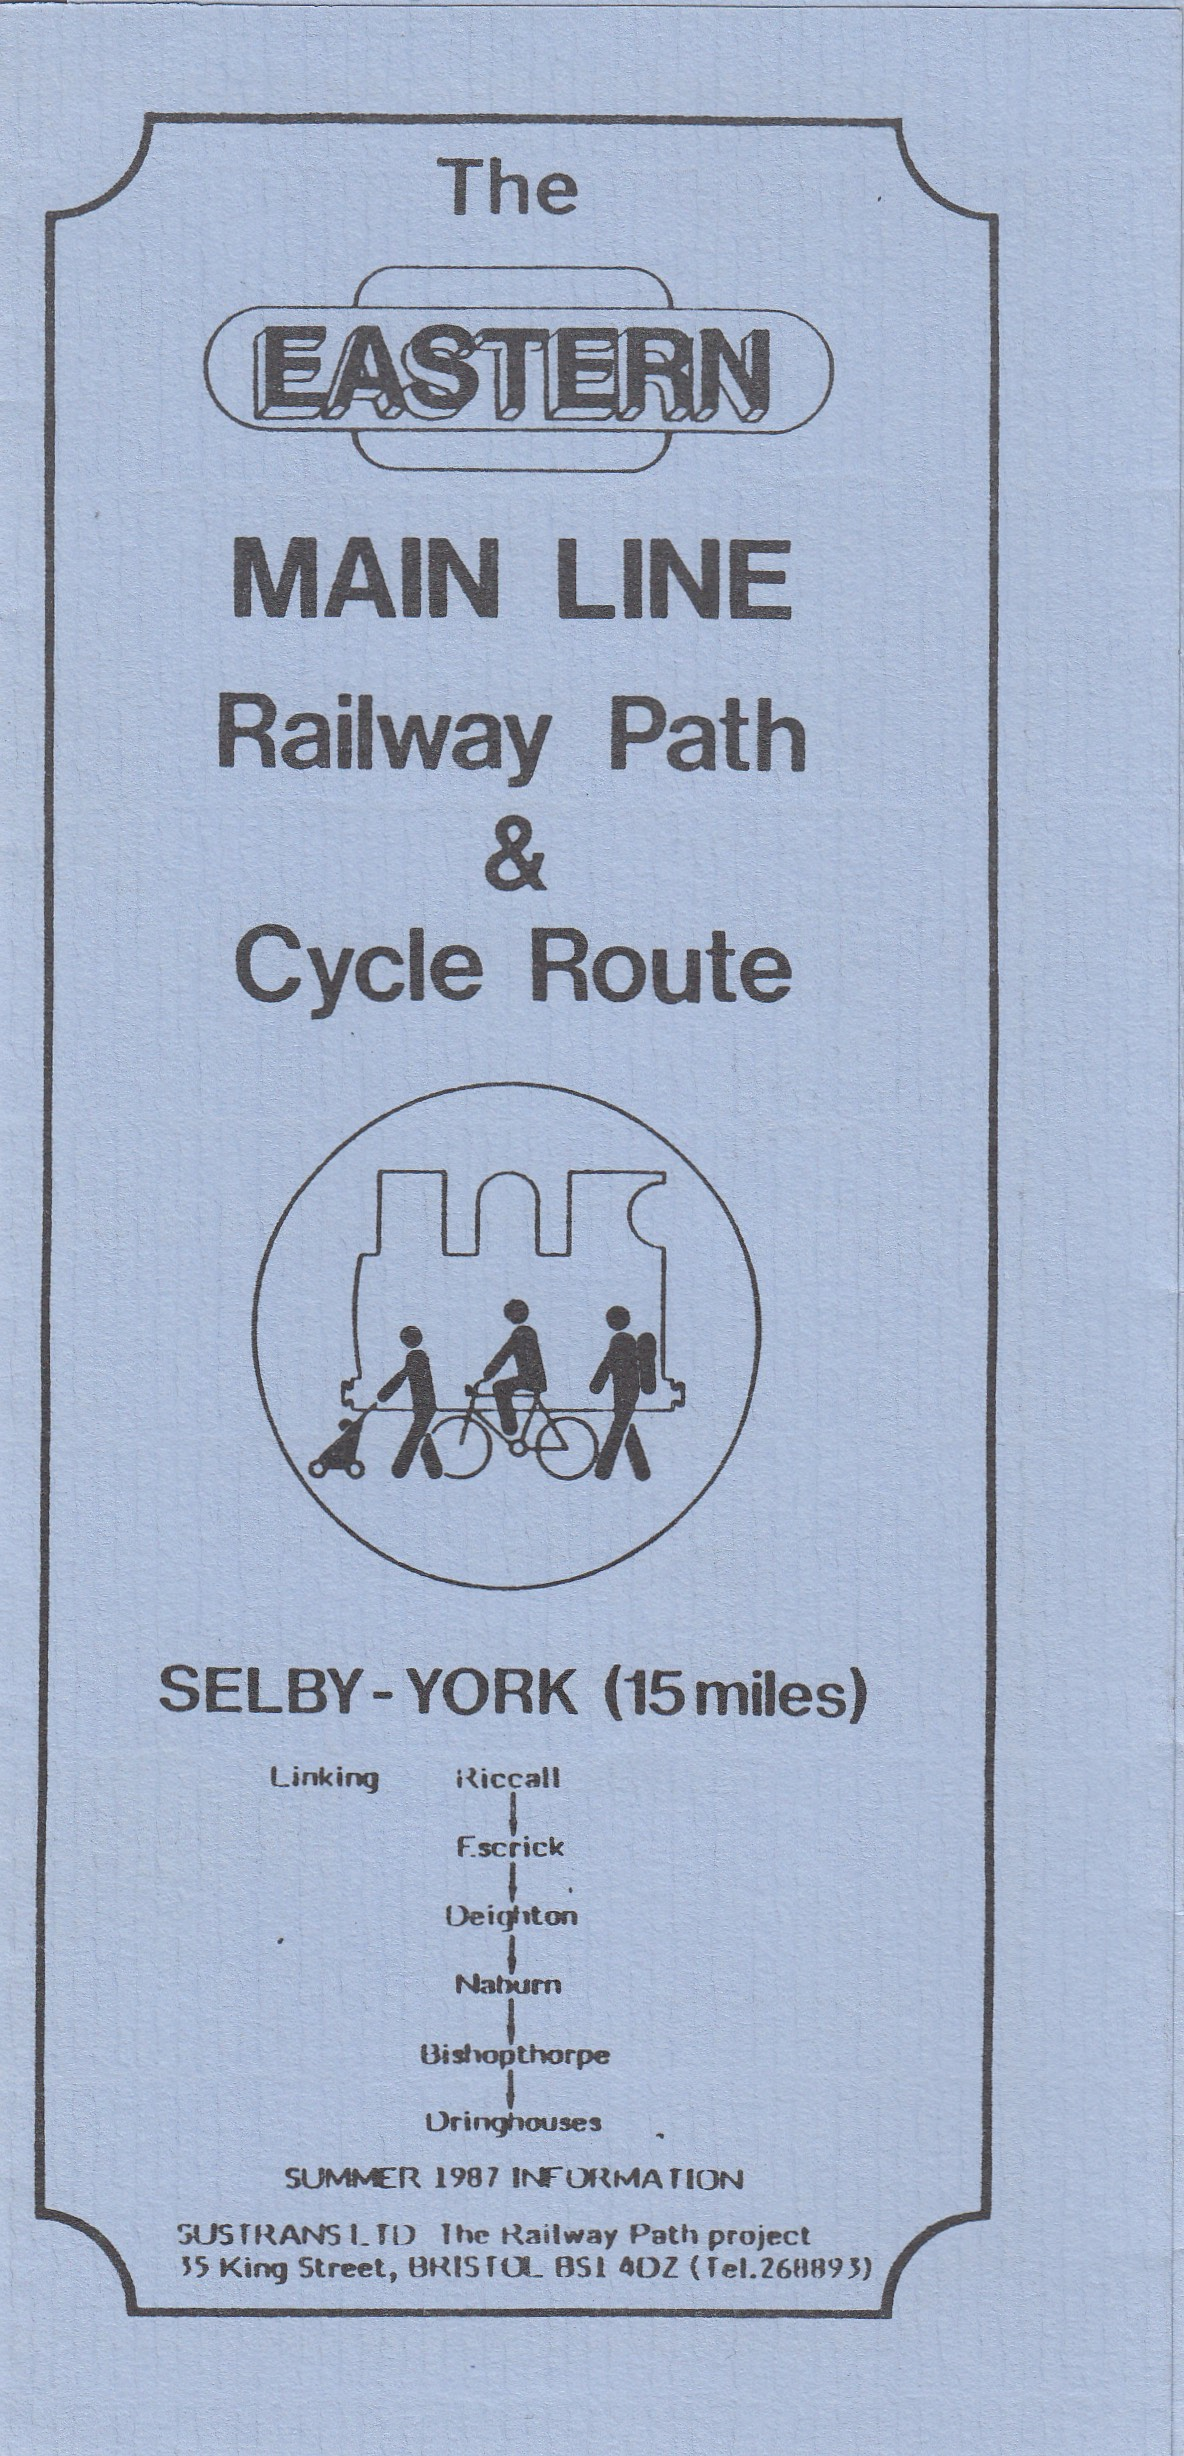 Eastern Main Line Railway Path & Cycle Route